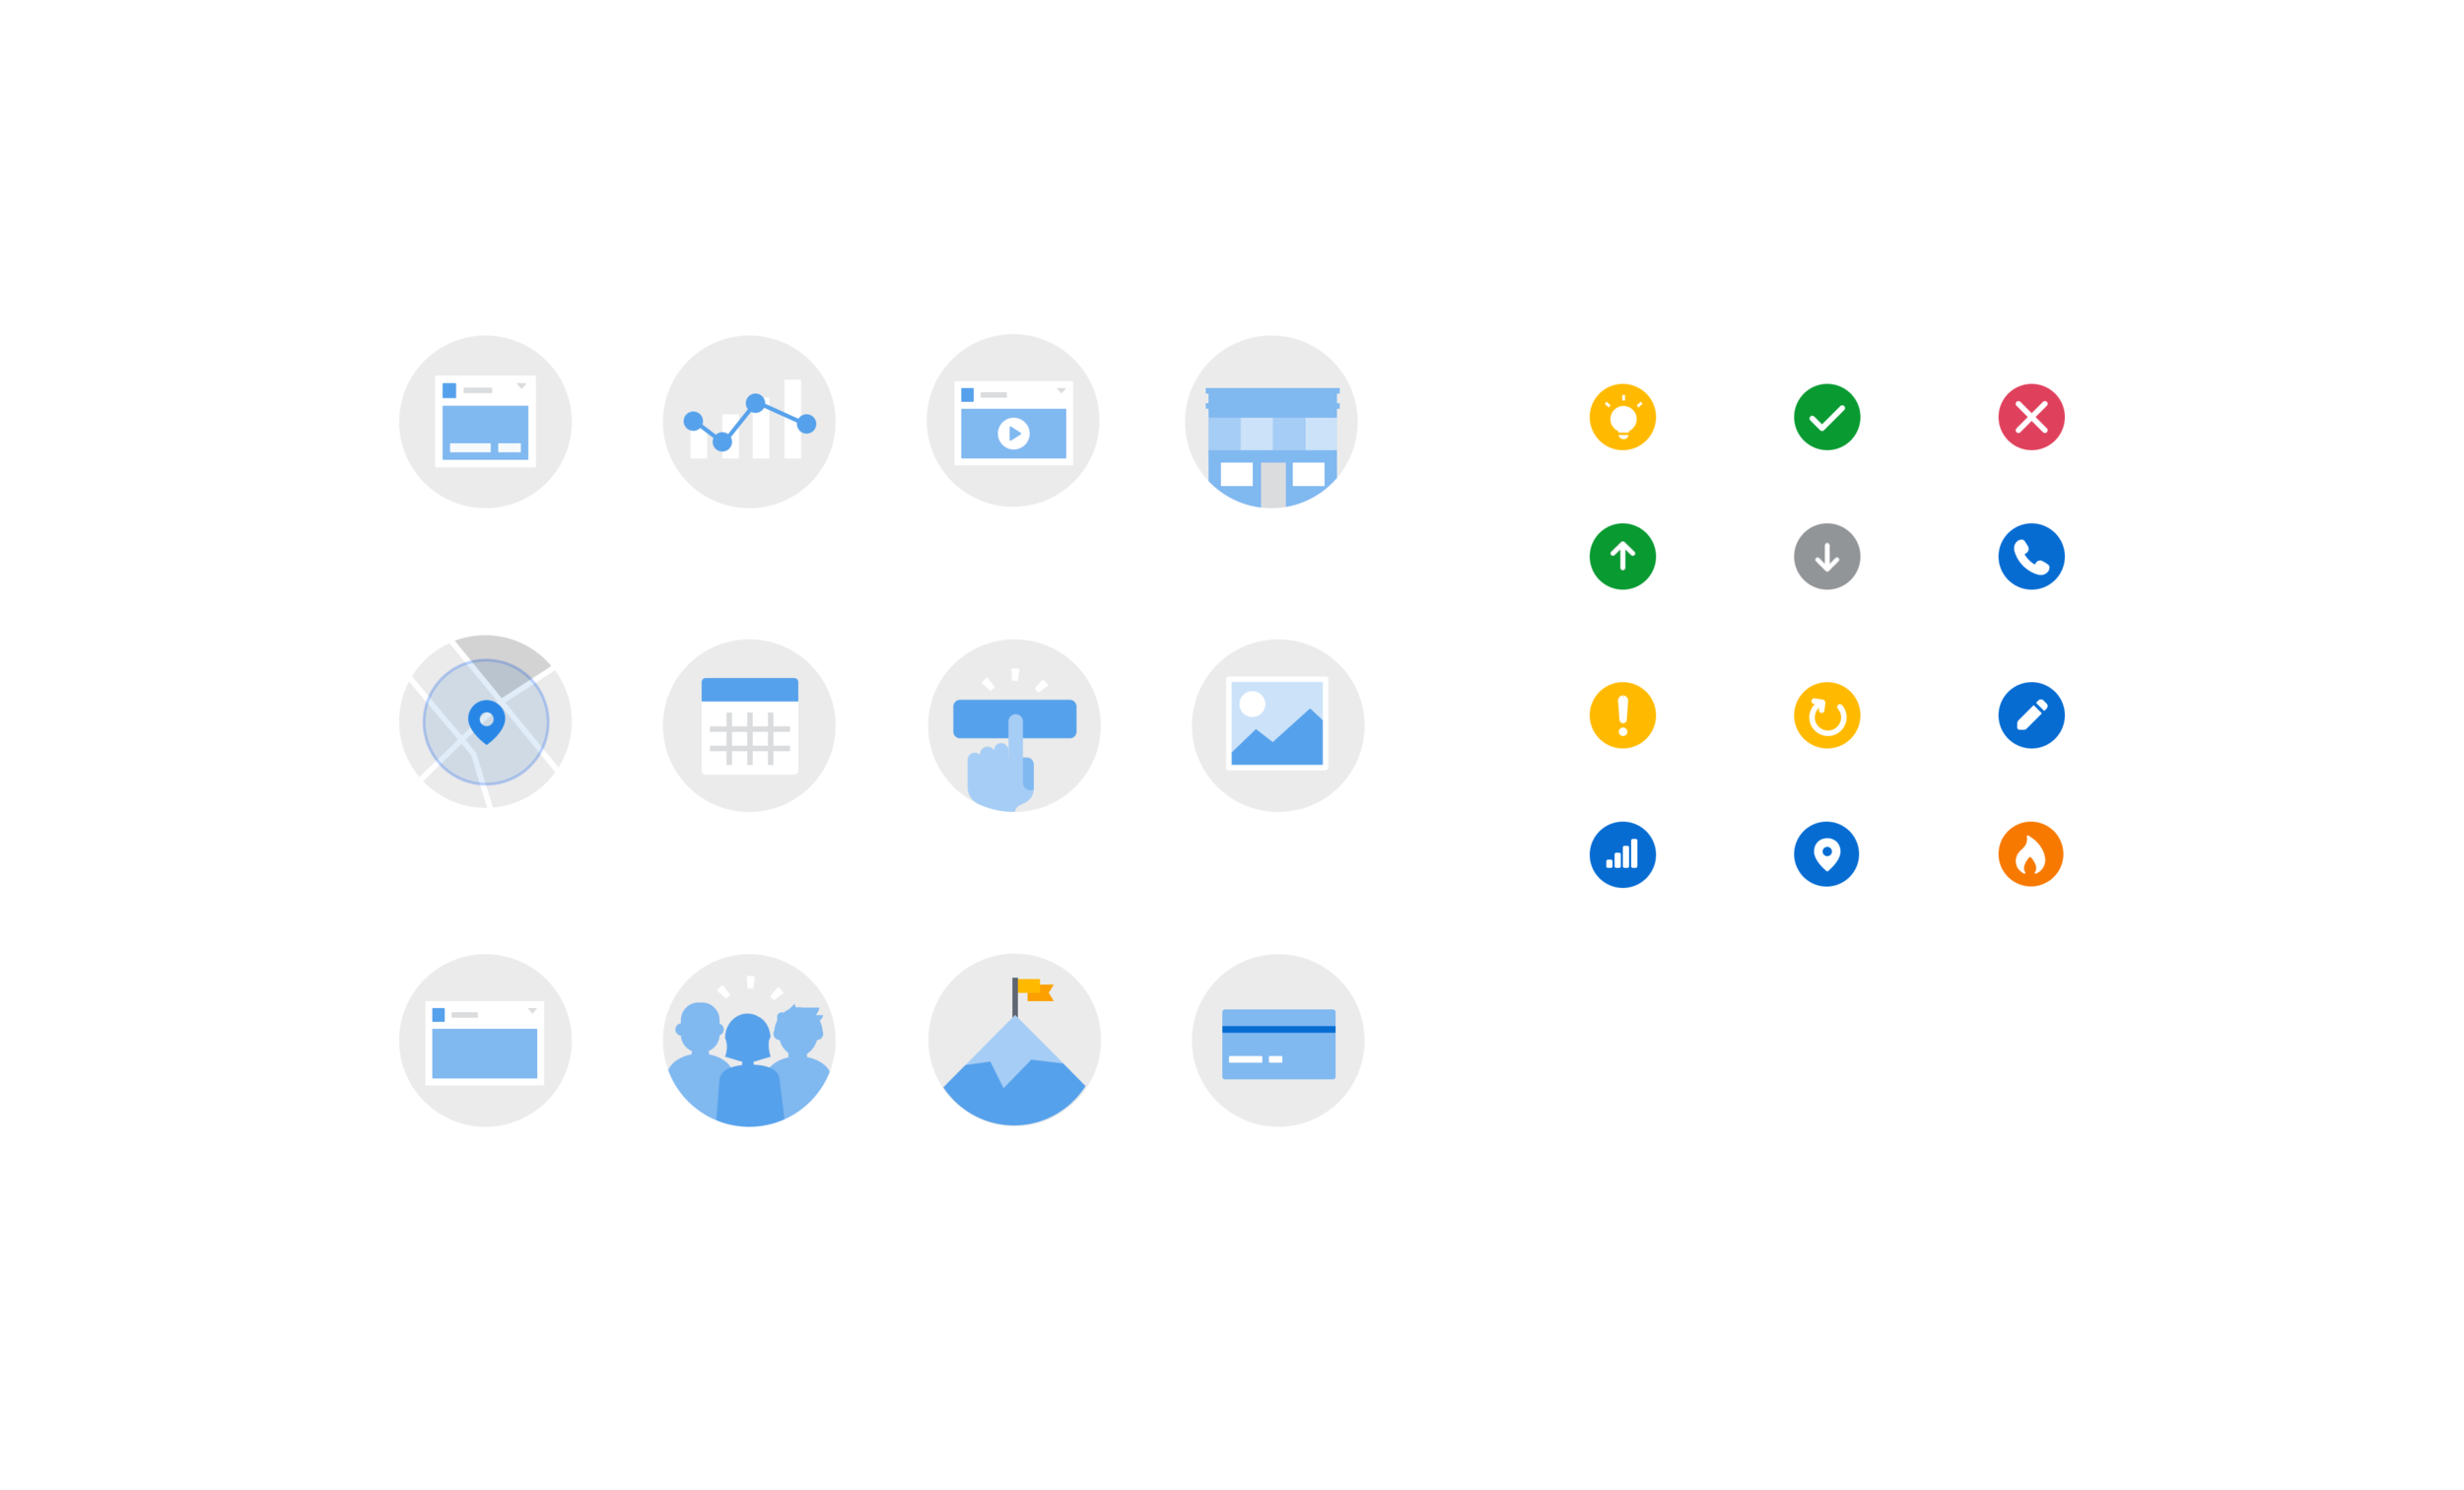 """The final set of icons, the larger type being generalized concepts of things like """"clicks"""", """"payment"""", """"milestone"""", or """"post"""", and the smaller type consisting of more nuanced concepts like """"edit"""", """"hot"""", """"error"""", and """"approved"""". These could be combined to make concepts like """"Ad Approved"""" or """"Edit Video"""", or used individually."""